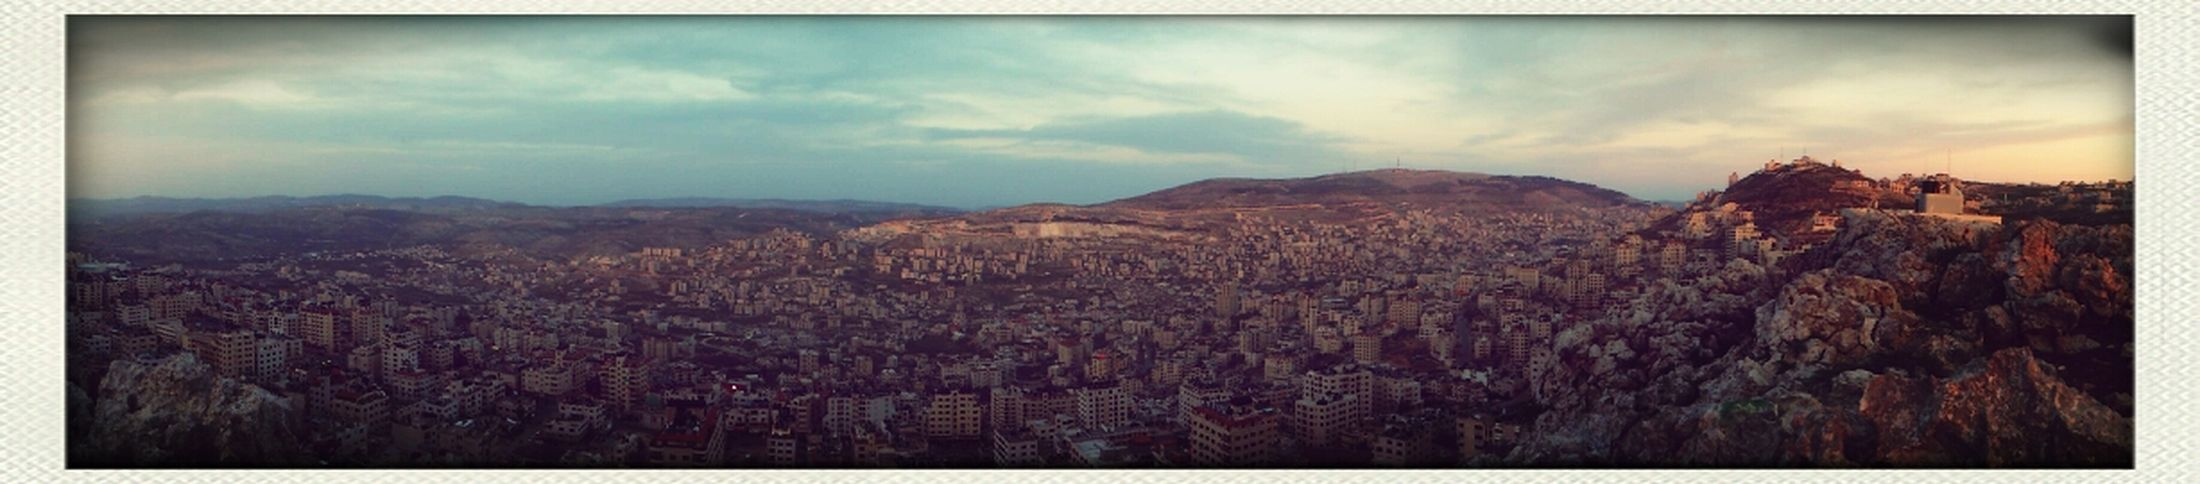 Lovely city of Nablus